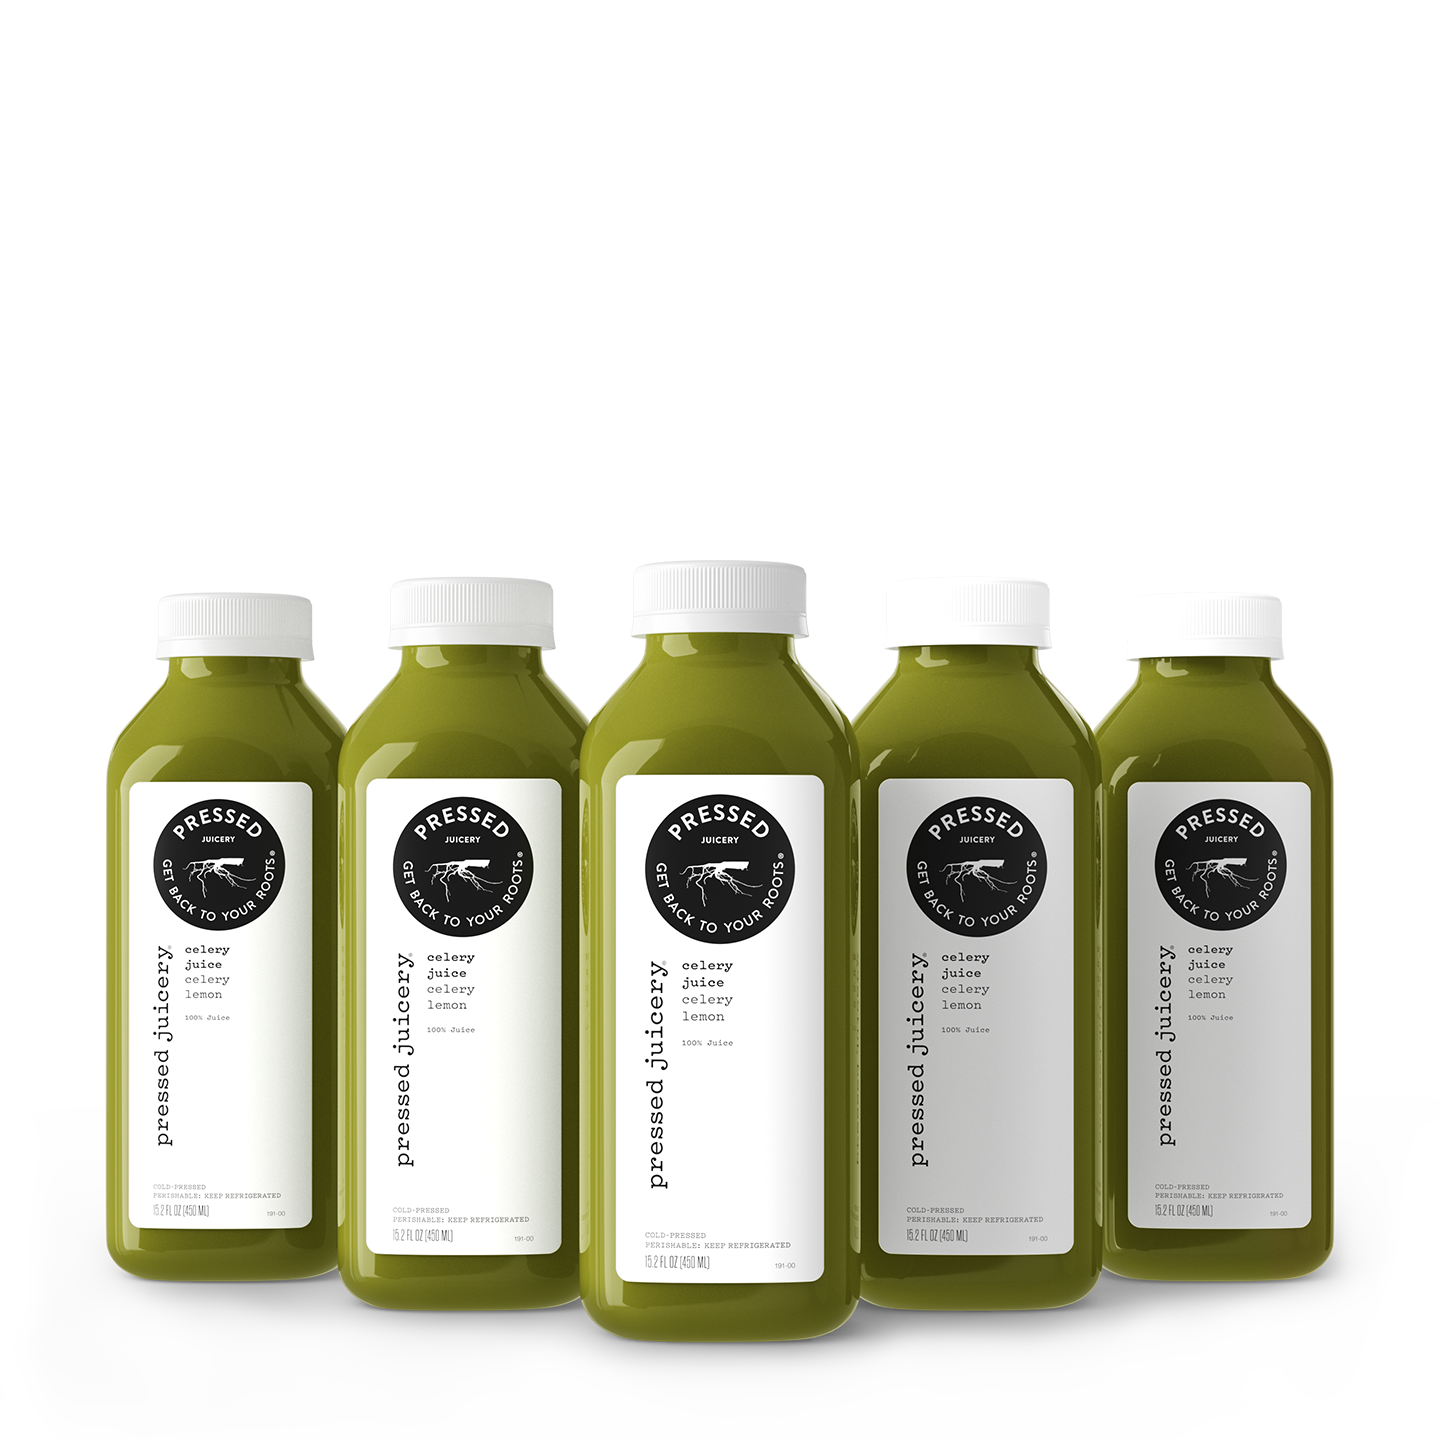 5-Juice Celery Bundle | The Daily Start product image